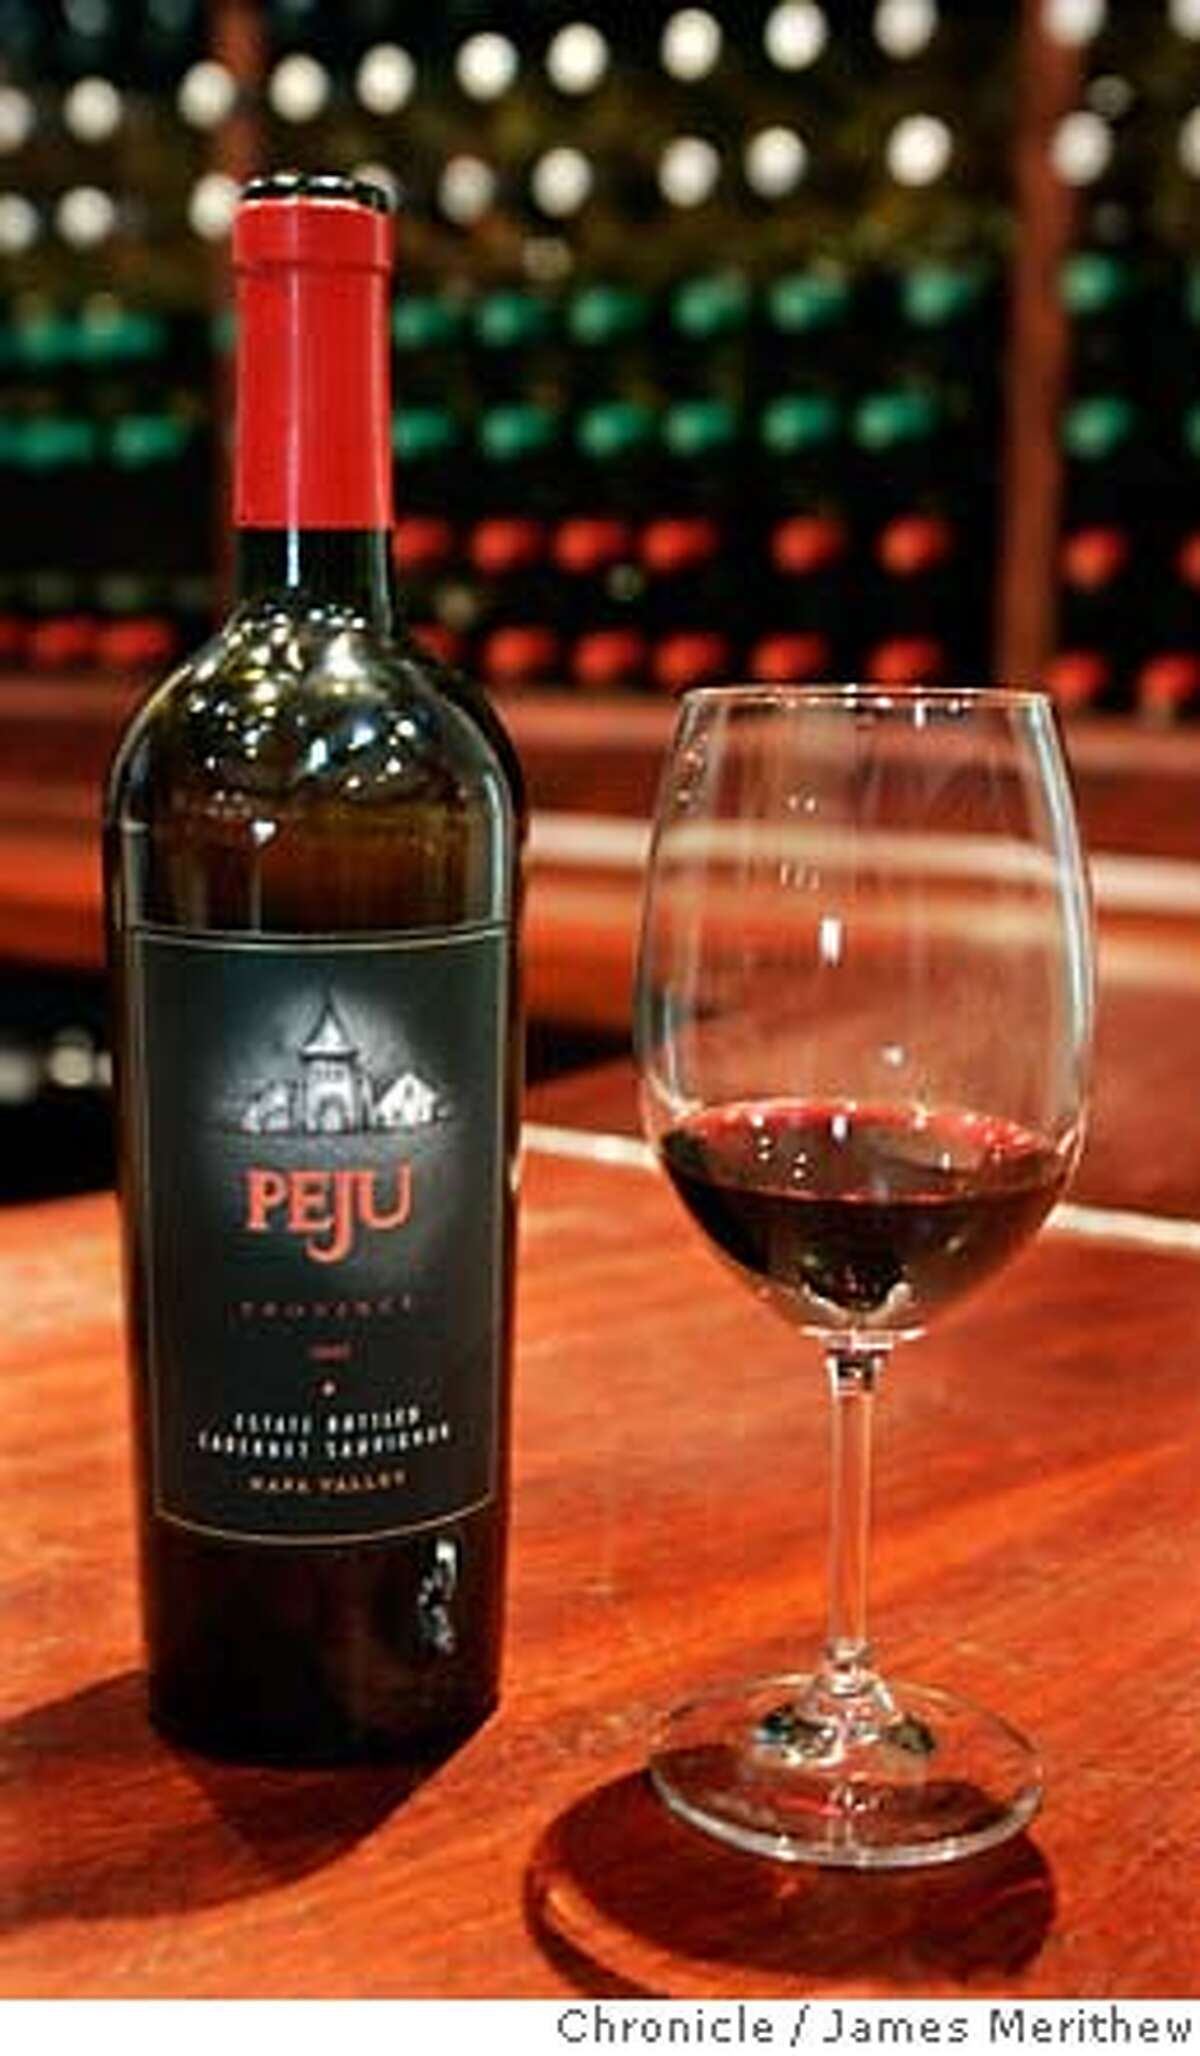 tastingroom_17NOV06_jmm0003.JPG A 2003 Cabernet Sauvignon in the tasting room at Peju. Photographs of Peju Province Winery for a tasting rooms review. The winery is located at 8466 St. Helena Highway Rutherford, CA, 94573 Jim Merithew/The Chronicle